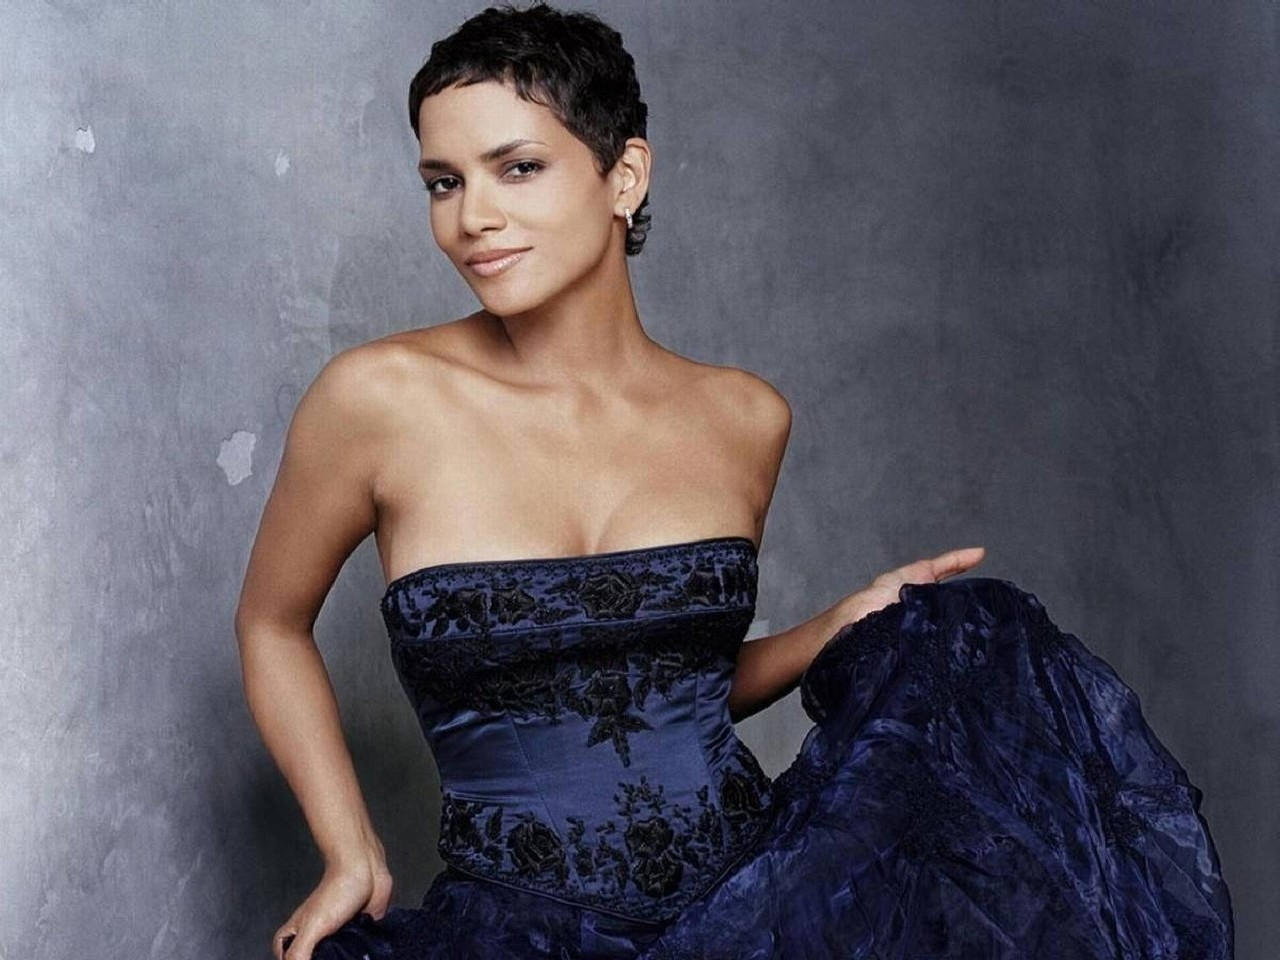 Wallpaper - Halle Berry, fascino ed eleganza